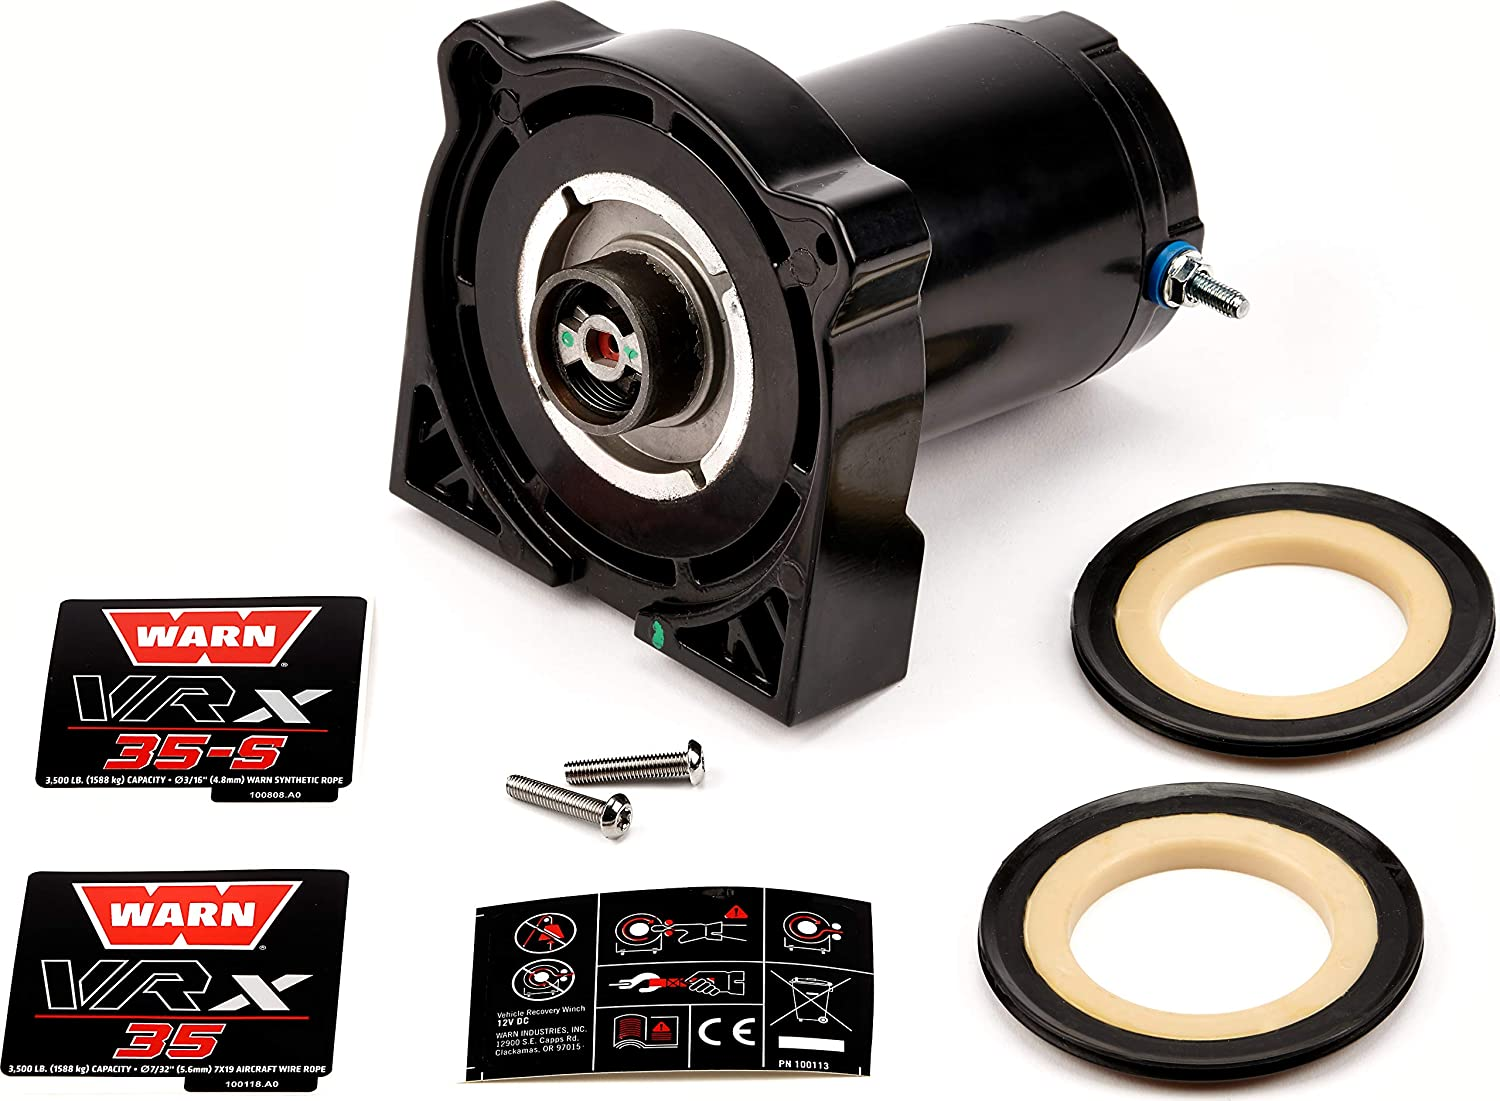 WARN 101033 Winch Motor Replacement Kit, Fits: VRX 35